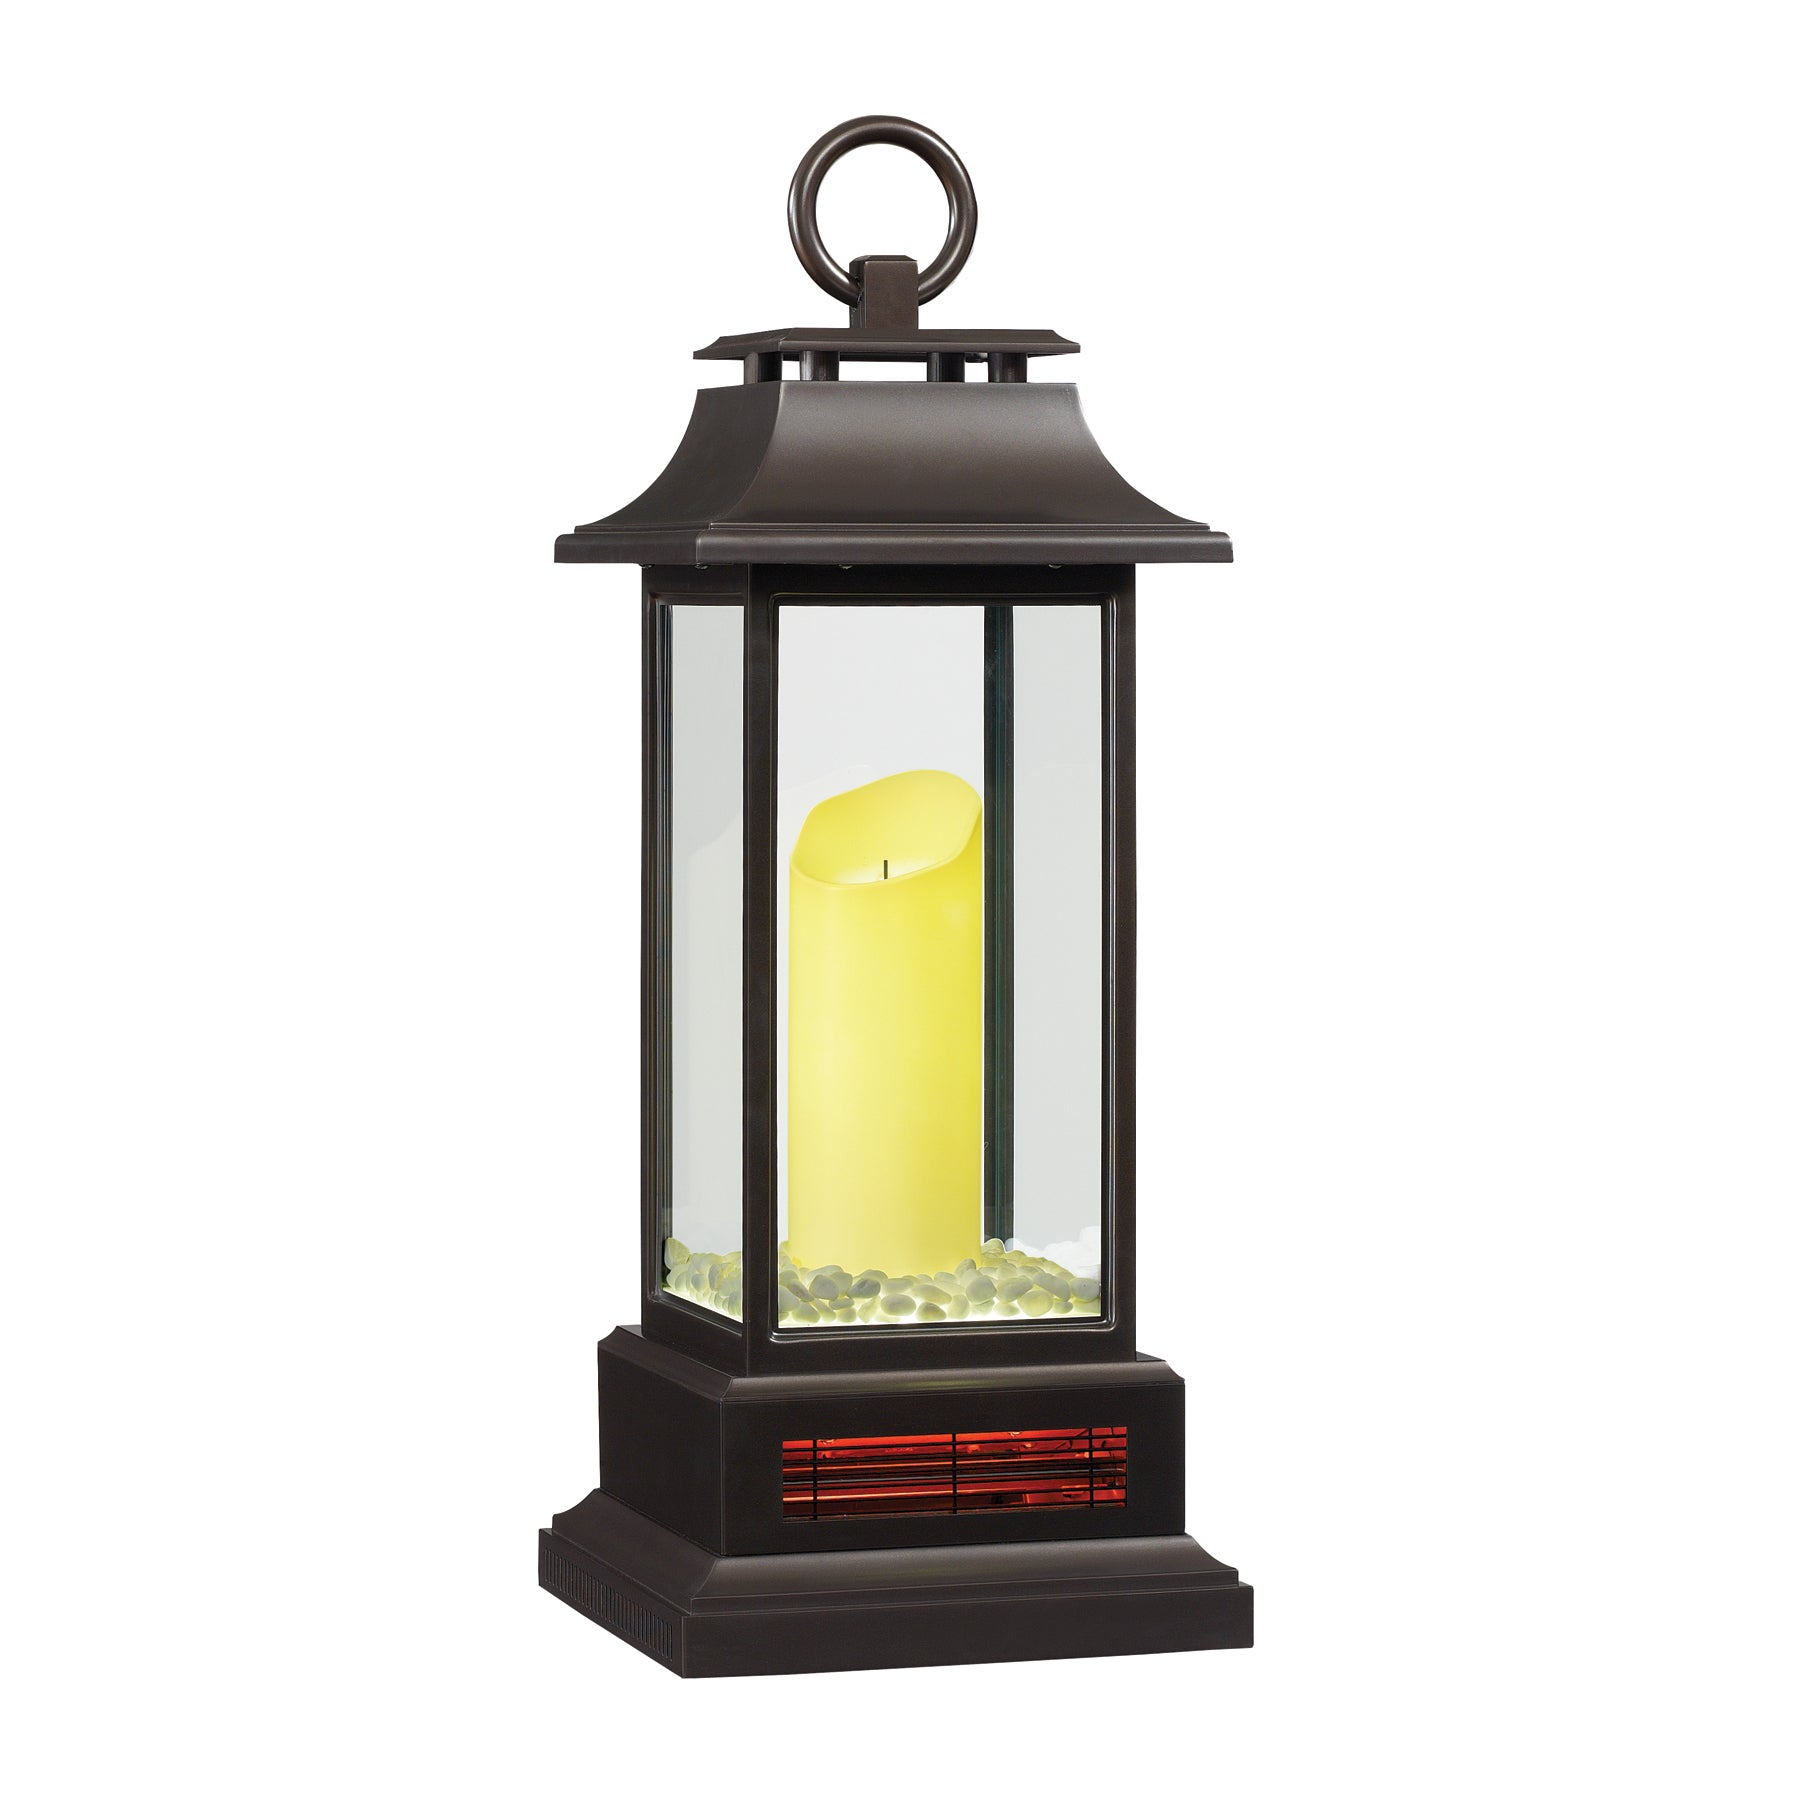 27-inch Portable LED Electric Flameless Candle Lantern with Quartz Infrared  Heater for Indoor Use, Bronze - Free Shipping Today - Overstock.com -  19564076